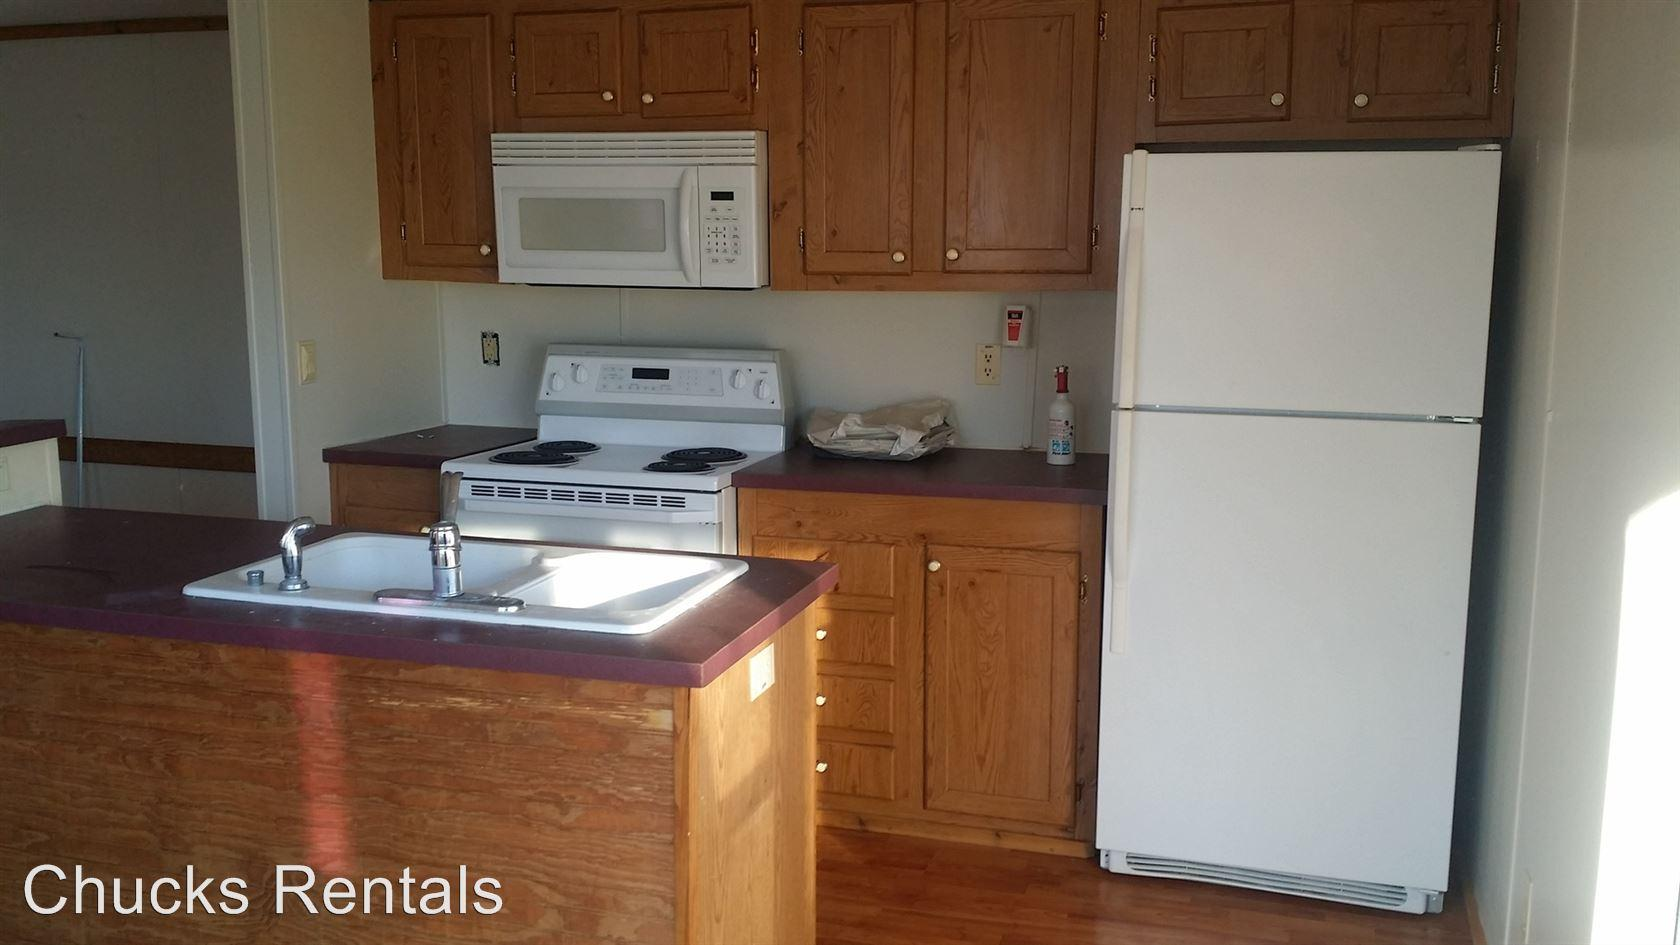 708 East College Apartments photo #1